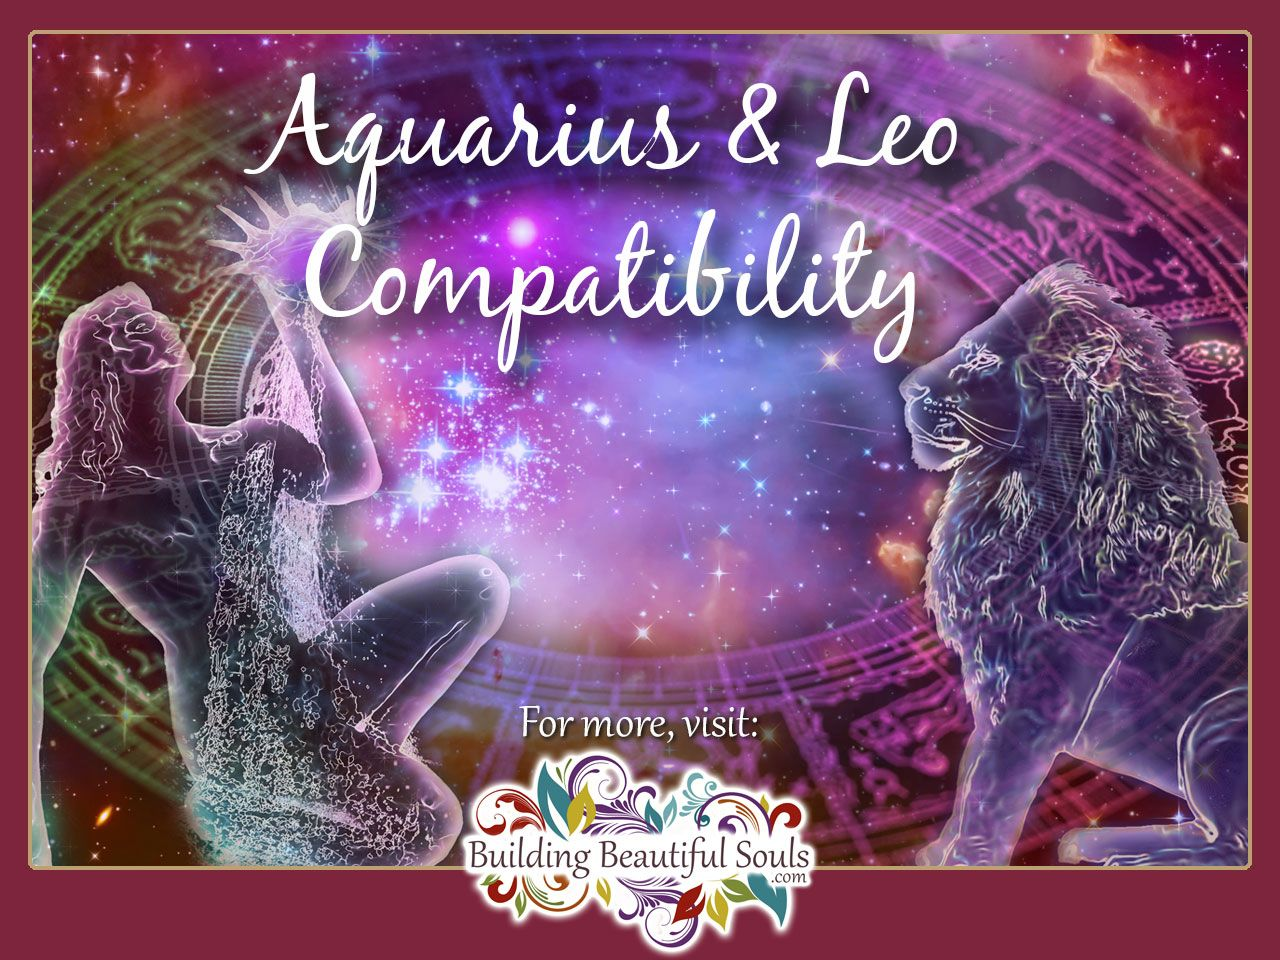 Aquarius and Leo 1280x960